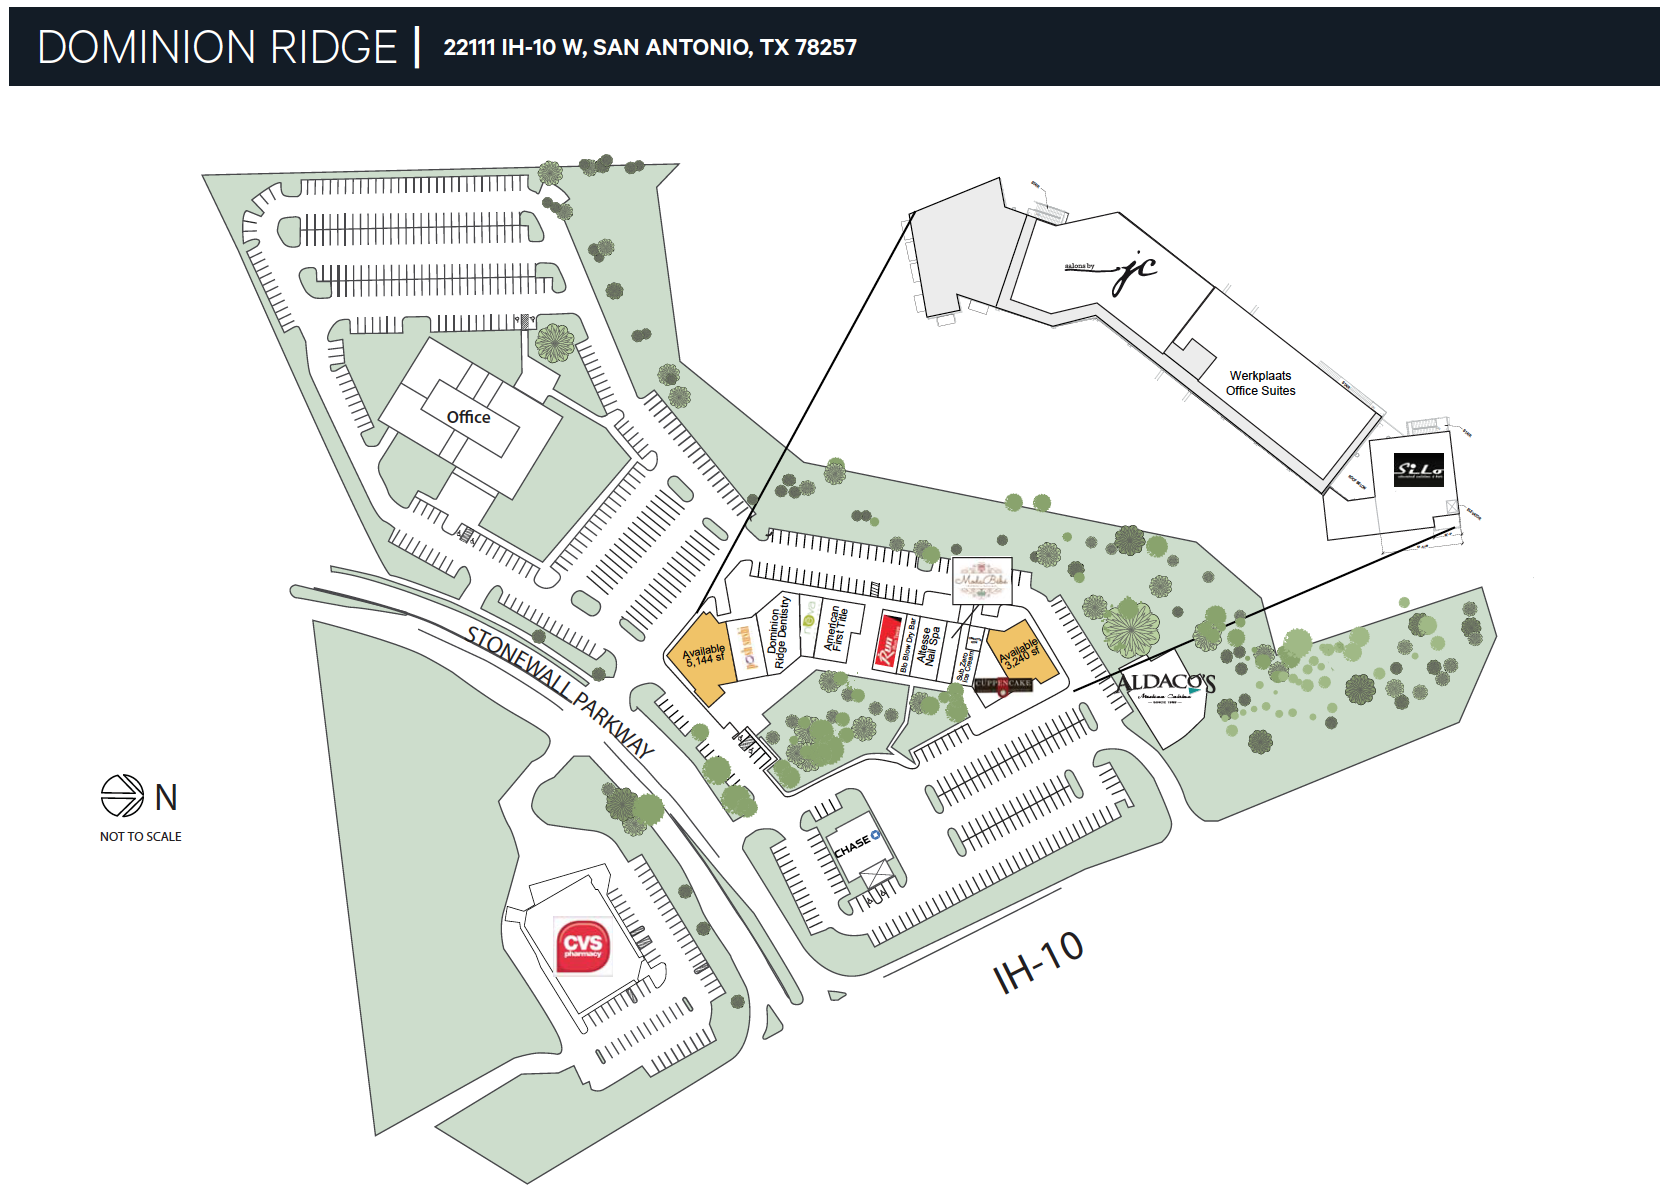 Leasing at Dominion Ridge Shopping Center